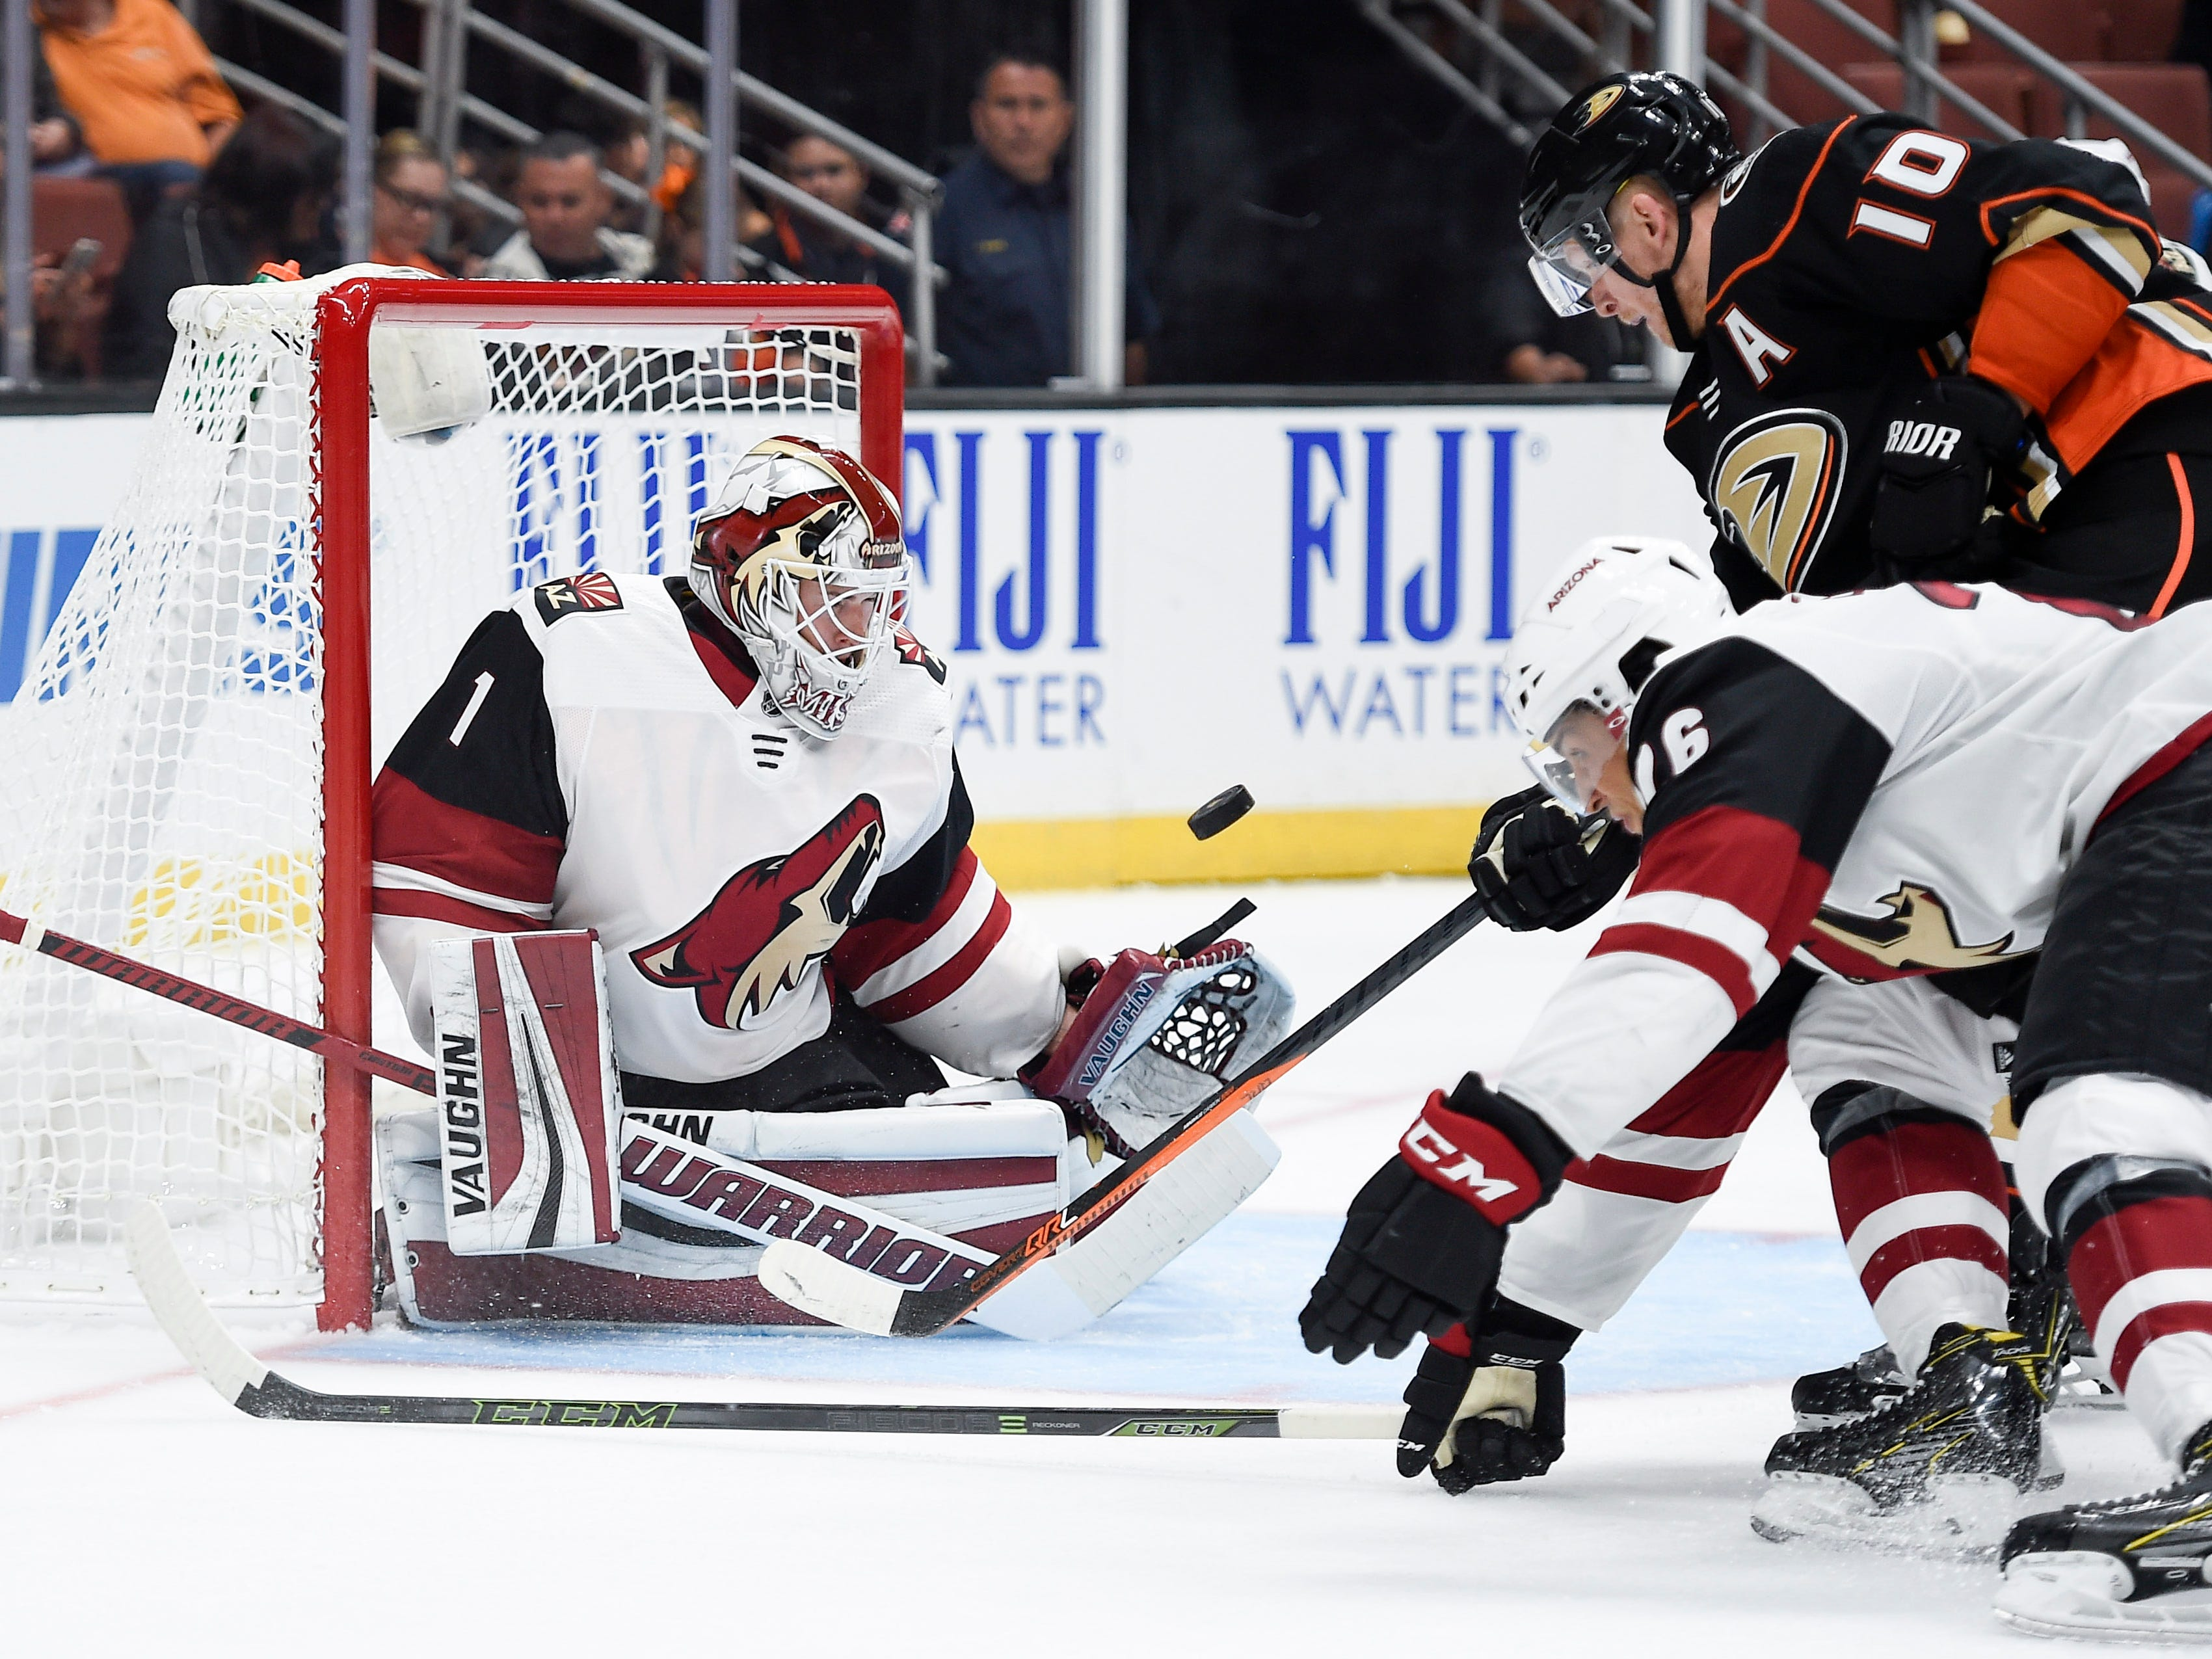 Sep 20, 2017; Anaheim, CA, USA; Phoenix Coyotes goalie Hunter Miska (1) makes a save in front of Anaheim Ducks right wing Corey Perry (10) during the third period at Honda Center. Mandatory Credit: Kelvin Kuo-USA TODAY Sports